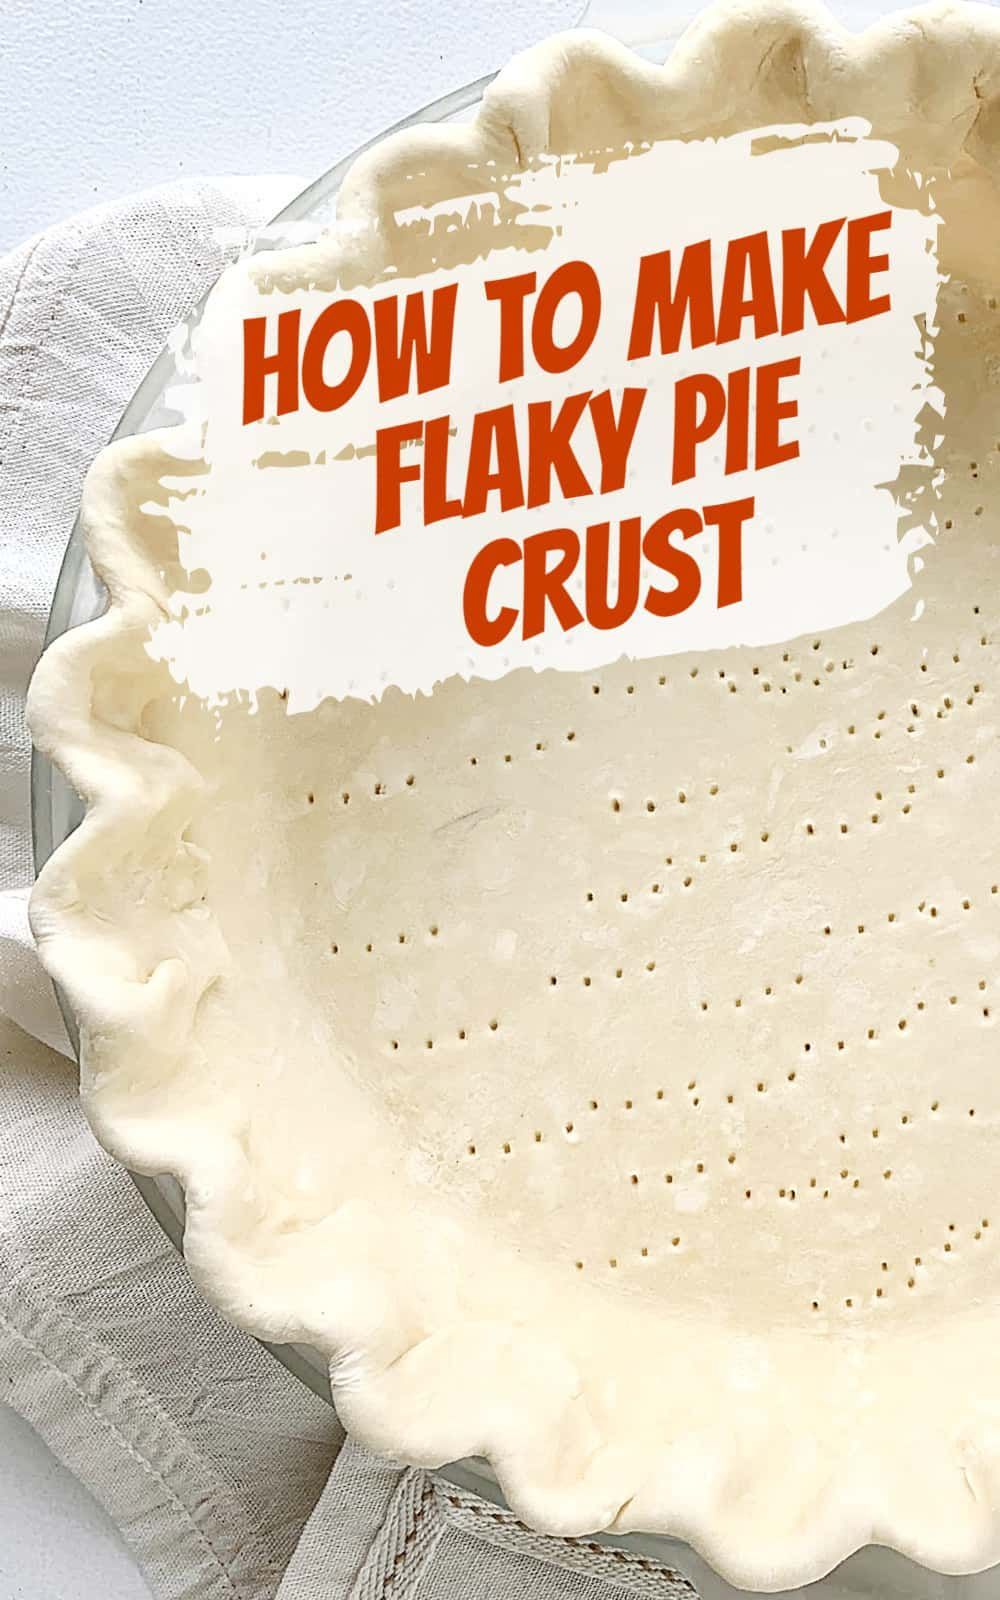 How To Make Flaky Pie Crust In 2020 Pie Crust Flaky Pie Crust Recipe Sour Cream Recipes